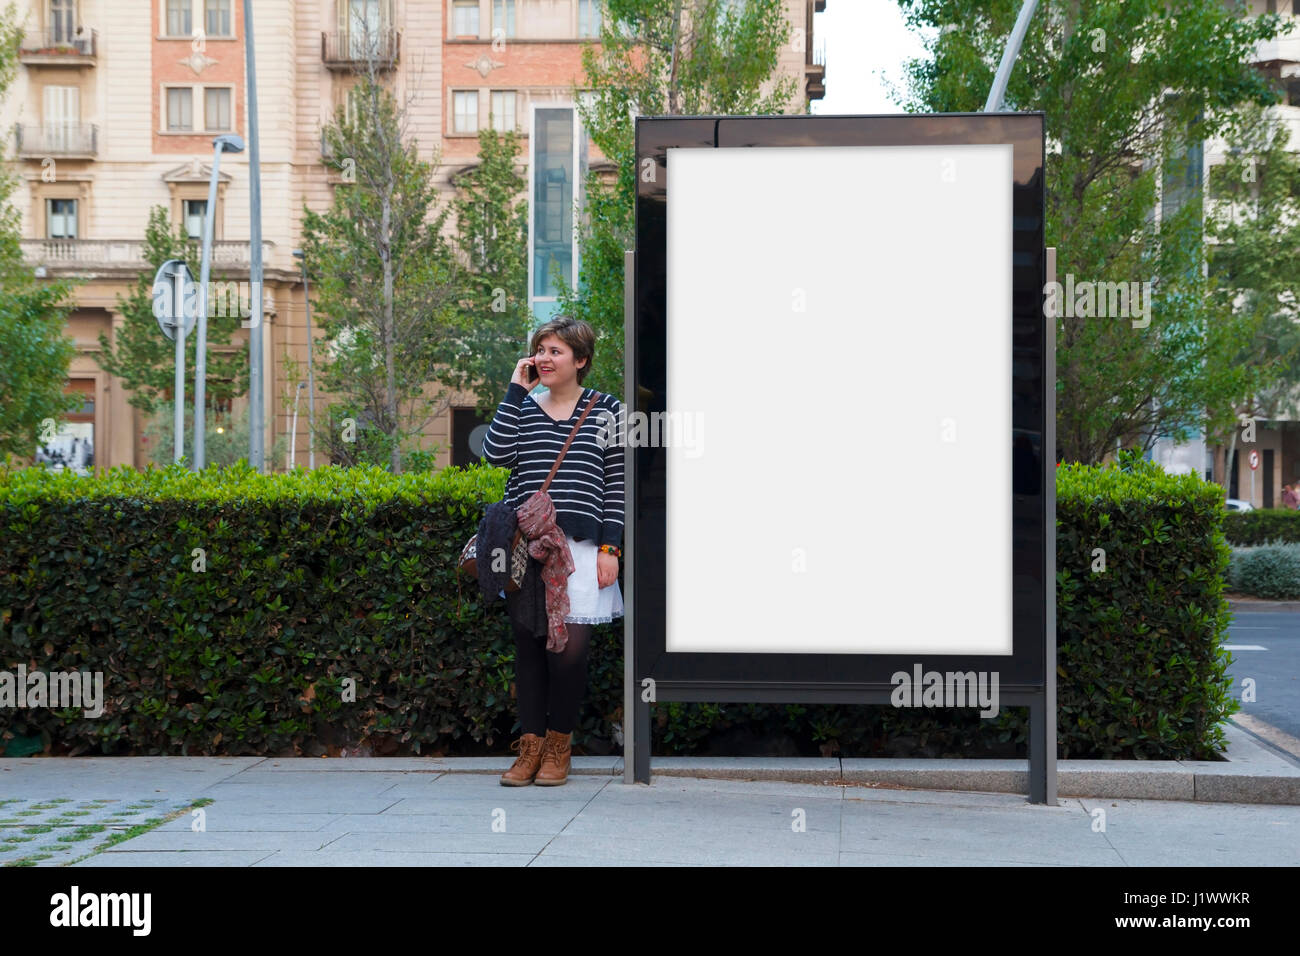 Woman talking with mobile phone, standing in a blank billboard - Stock Image